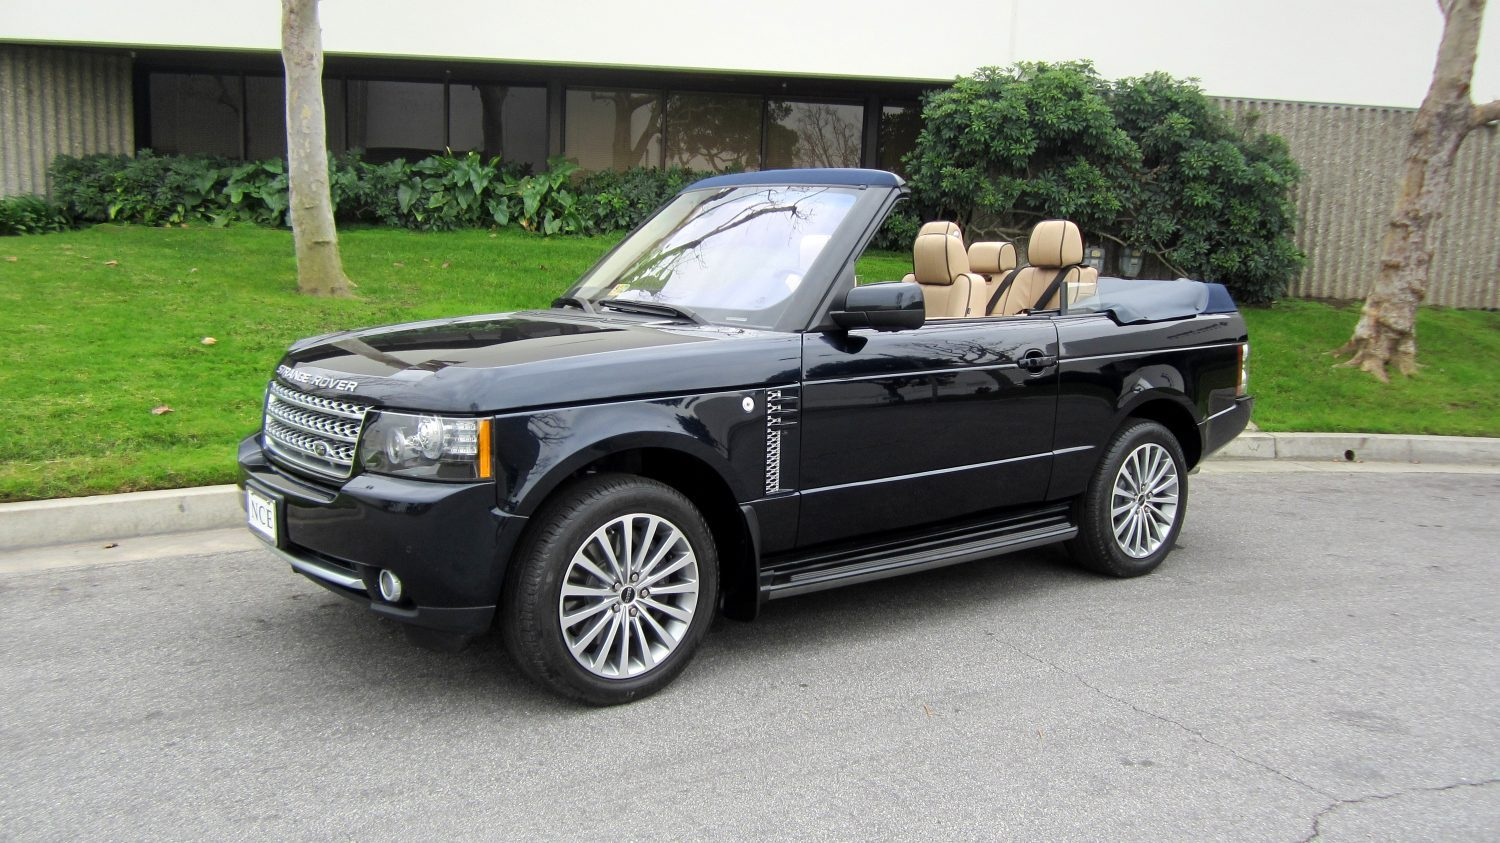 range rover 2 door convertible s. Black Bedroom Furniture Sets. Home Design Ideas